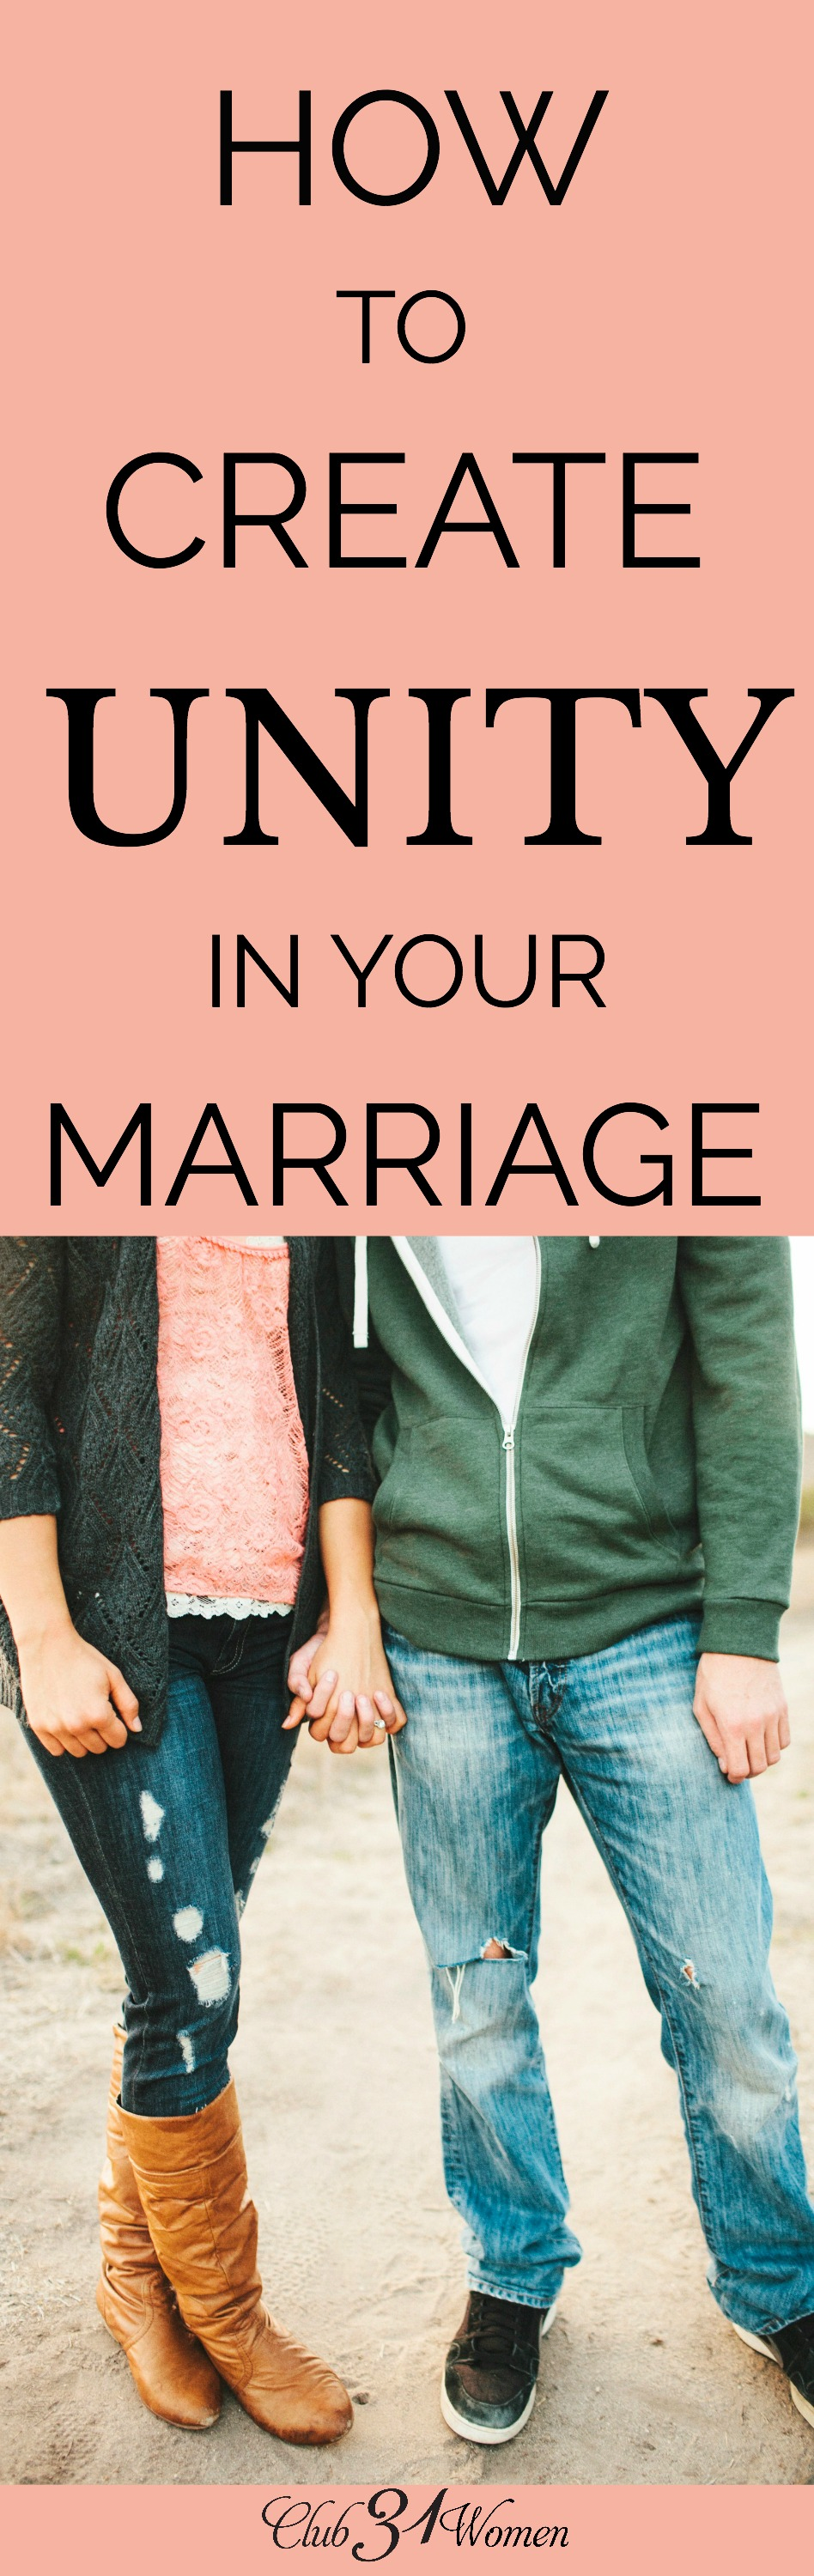 How does a married couple live in unity? How do two people begin to think and act as one? Here are 4 ways a married couple can stand together as one! via @Club31Women